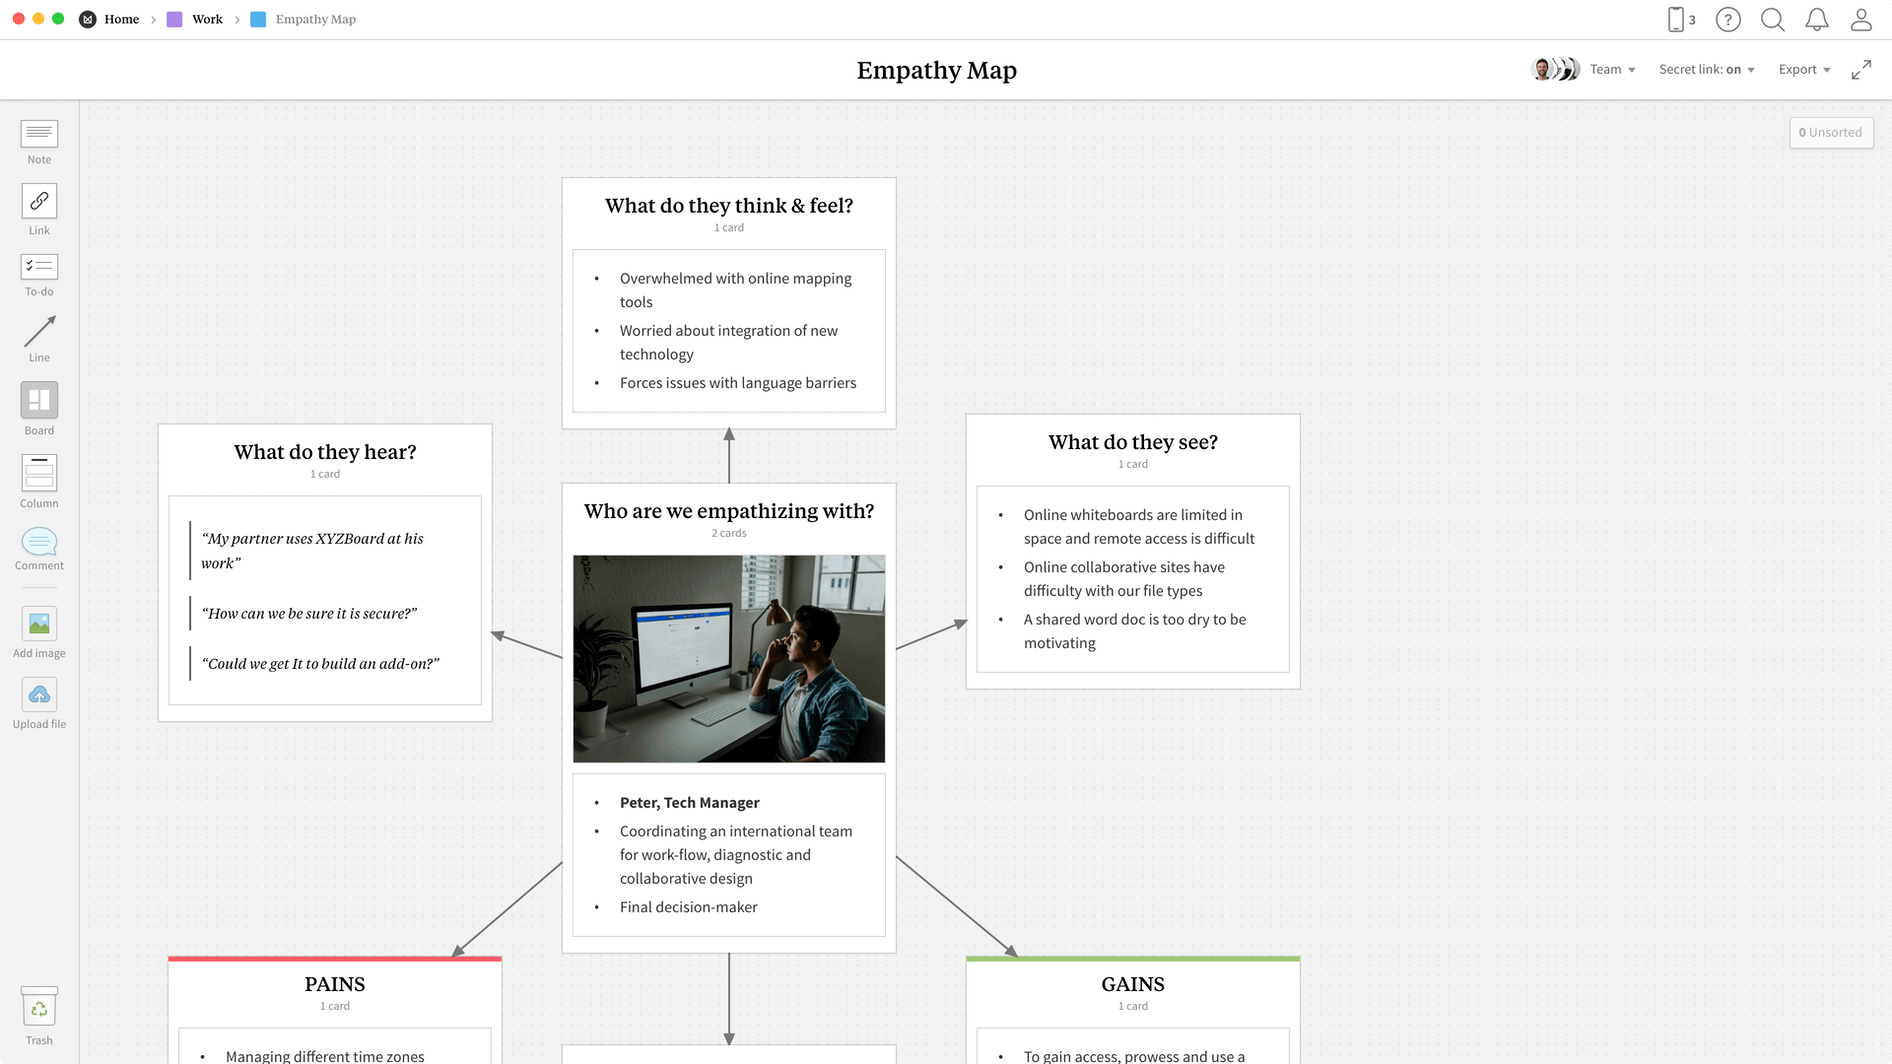 Empathy Map Template, within the Milanote app